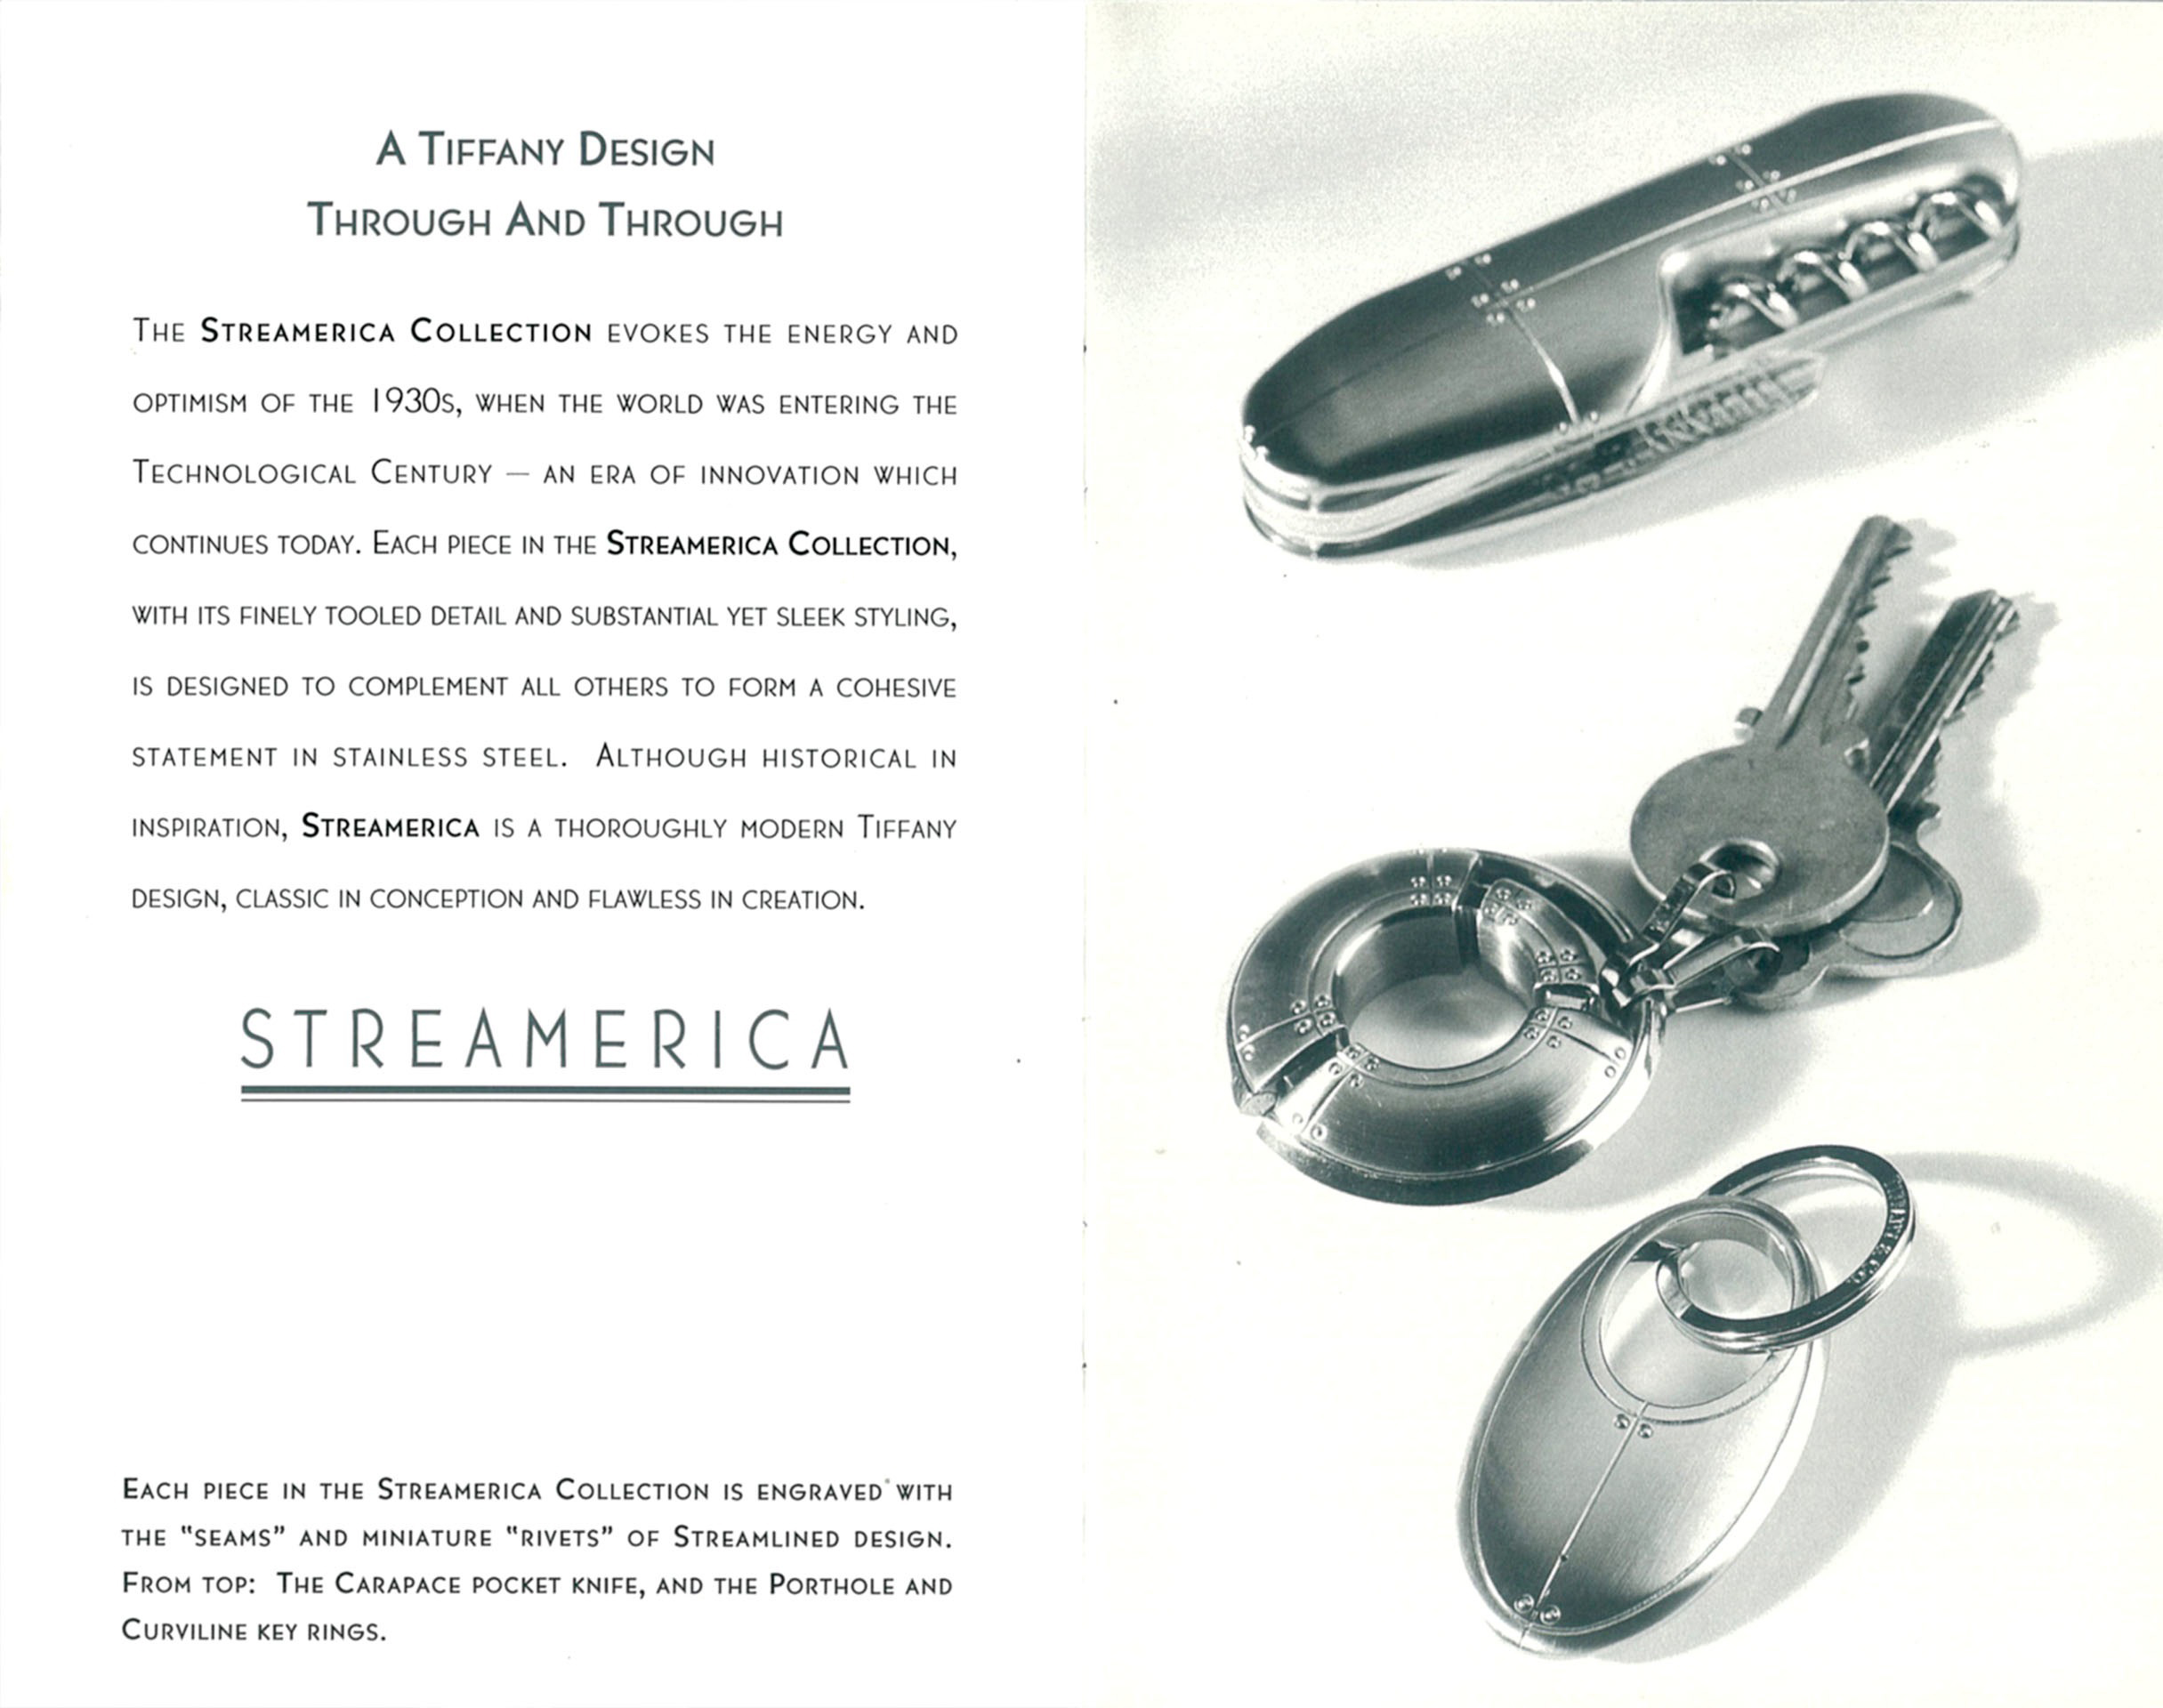 Tiffany & Co. Streamerica Stainless Steel Collection Advertisements Catalog Key Ring Curviline Porthole Carapace Pocket Knife